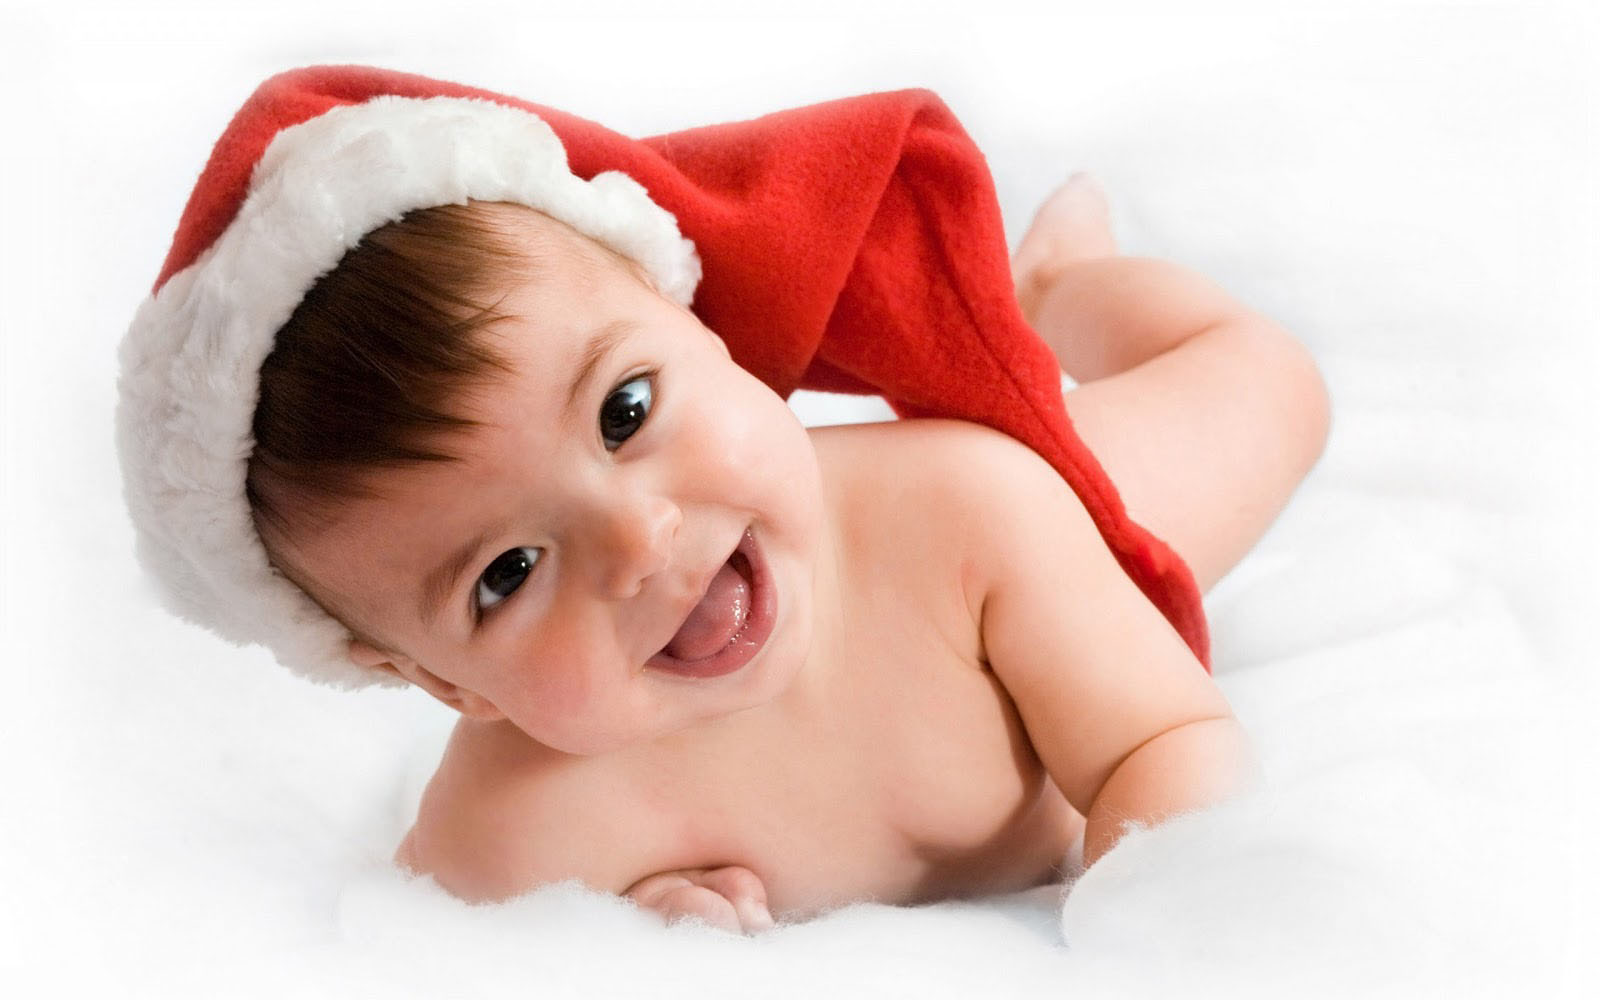 Tag Little Babies Wallpapers Images Photos and Pictures for 1600x1000